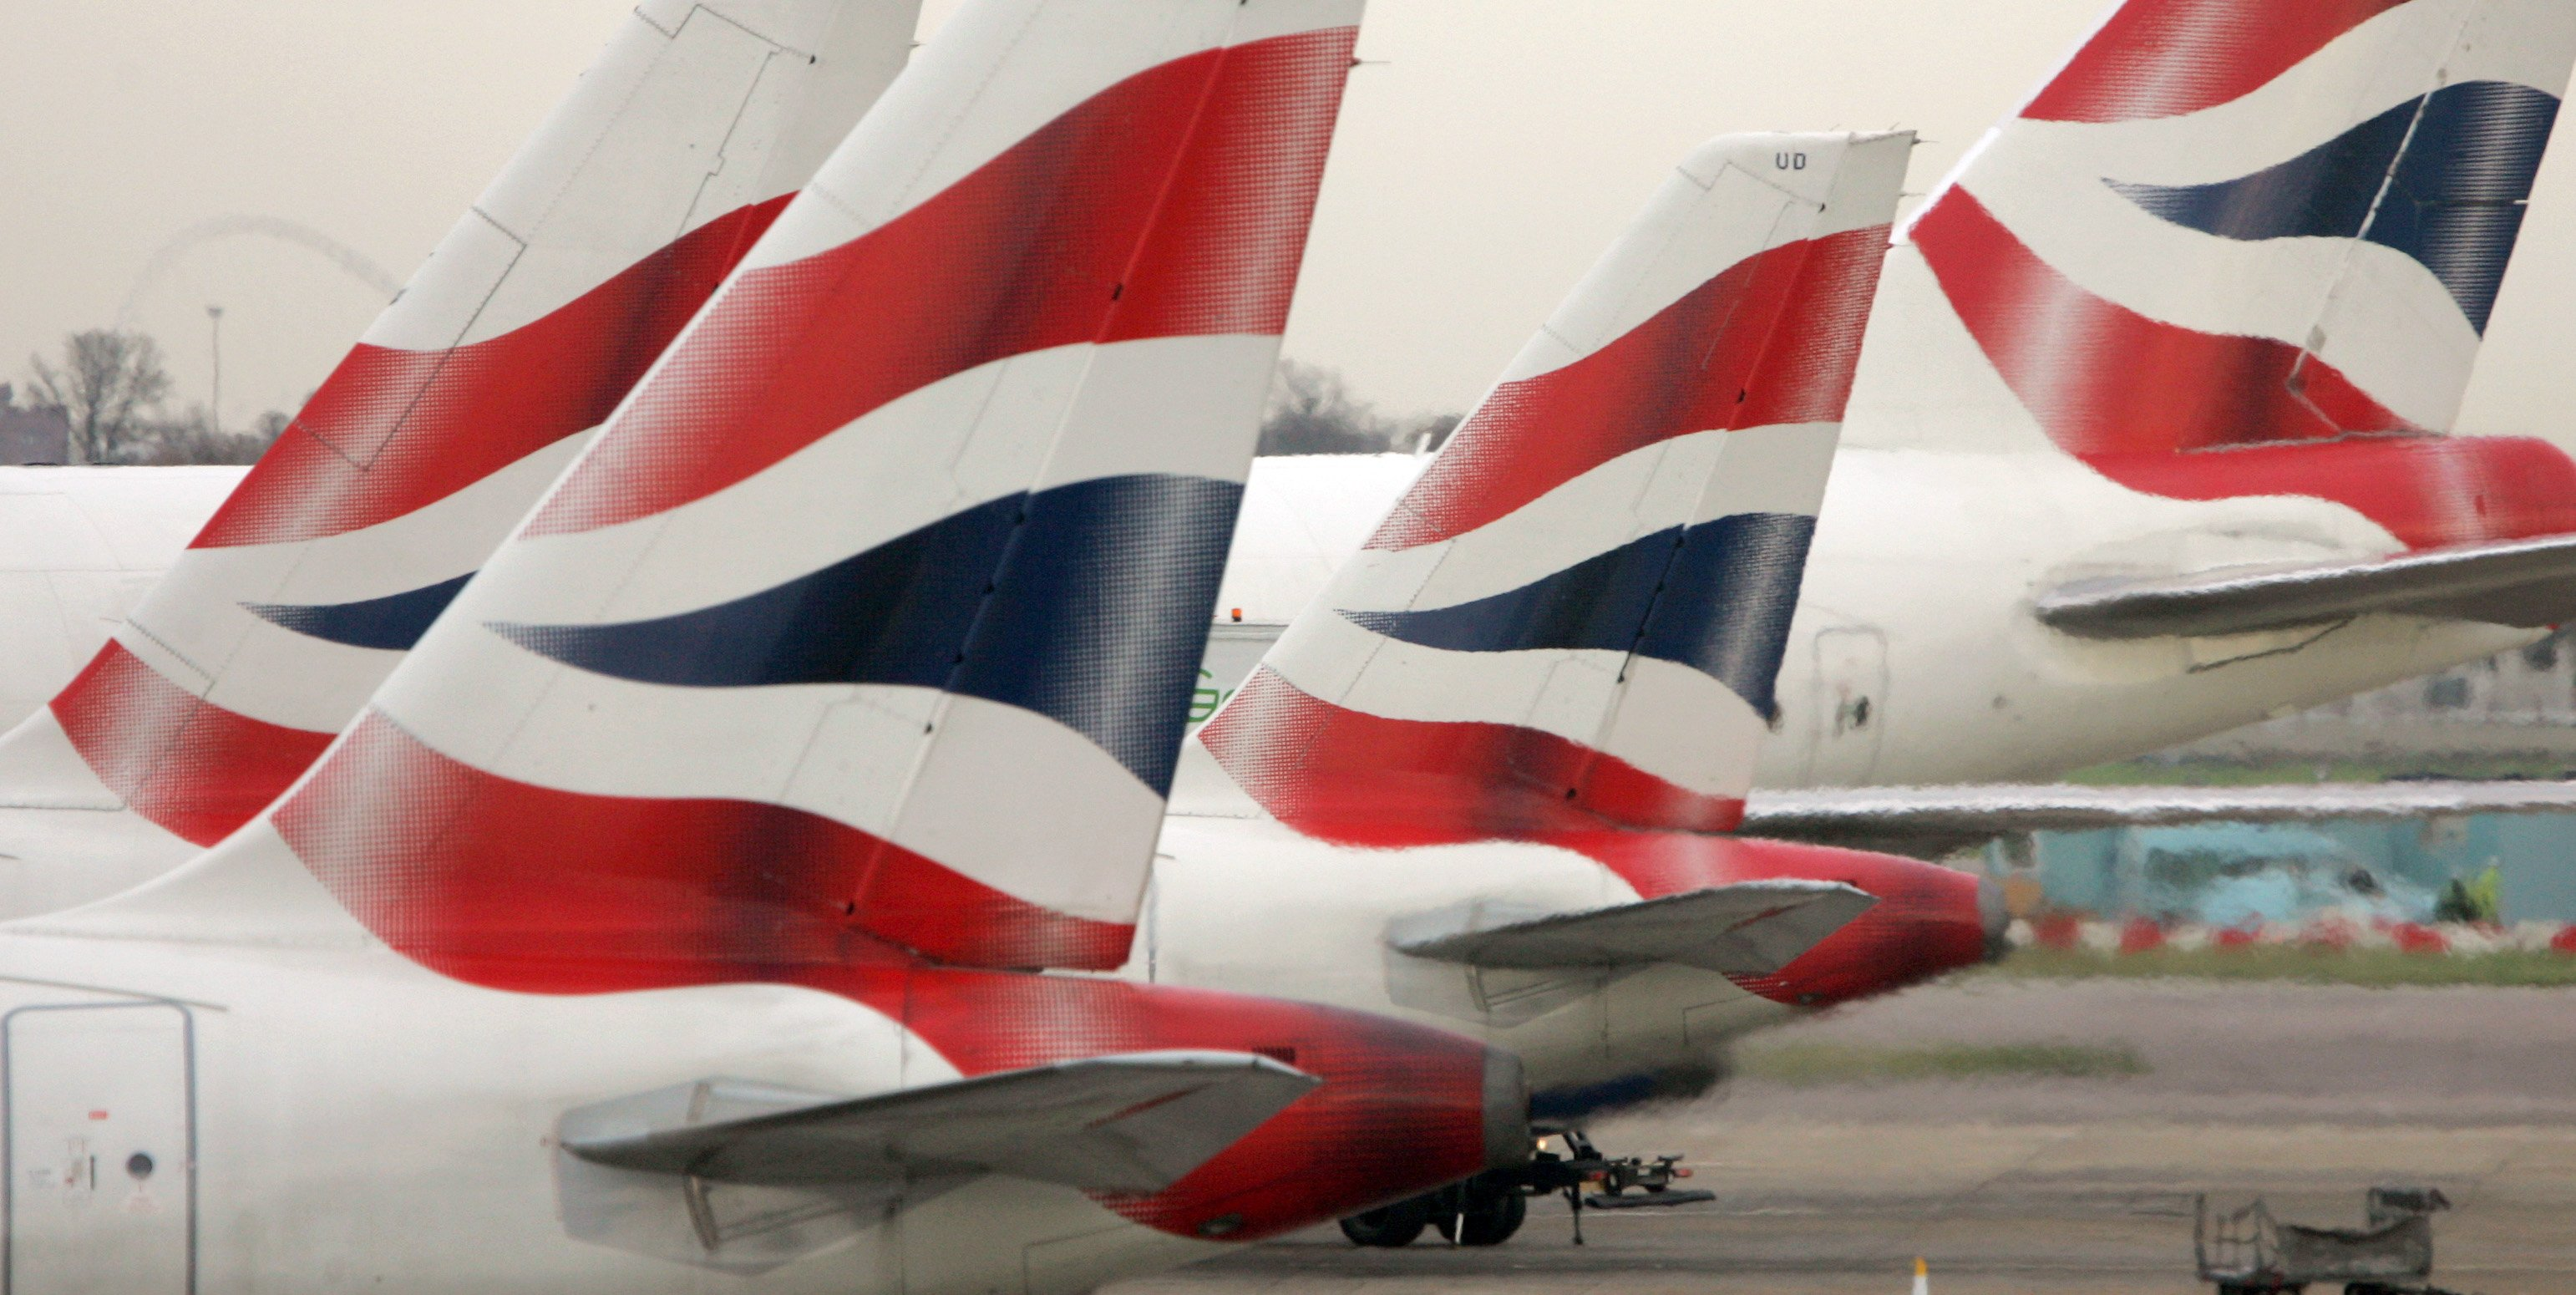 BA could lose Heathrow slots due to job cuts, minister suggests